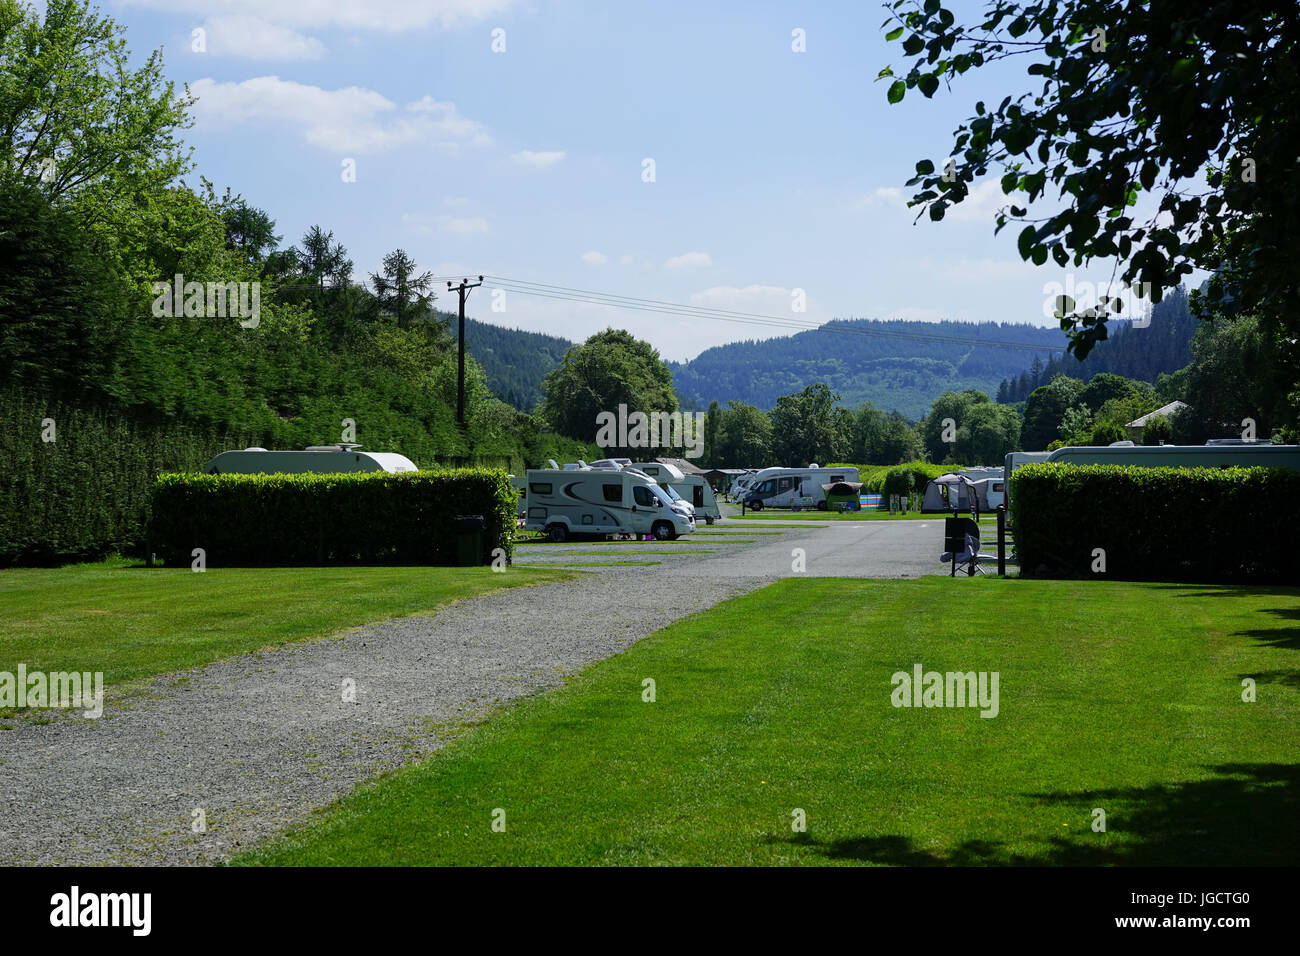 Campsite at Betws-y- coed, North Wales, UK. - Stock Image